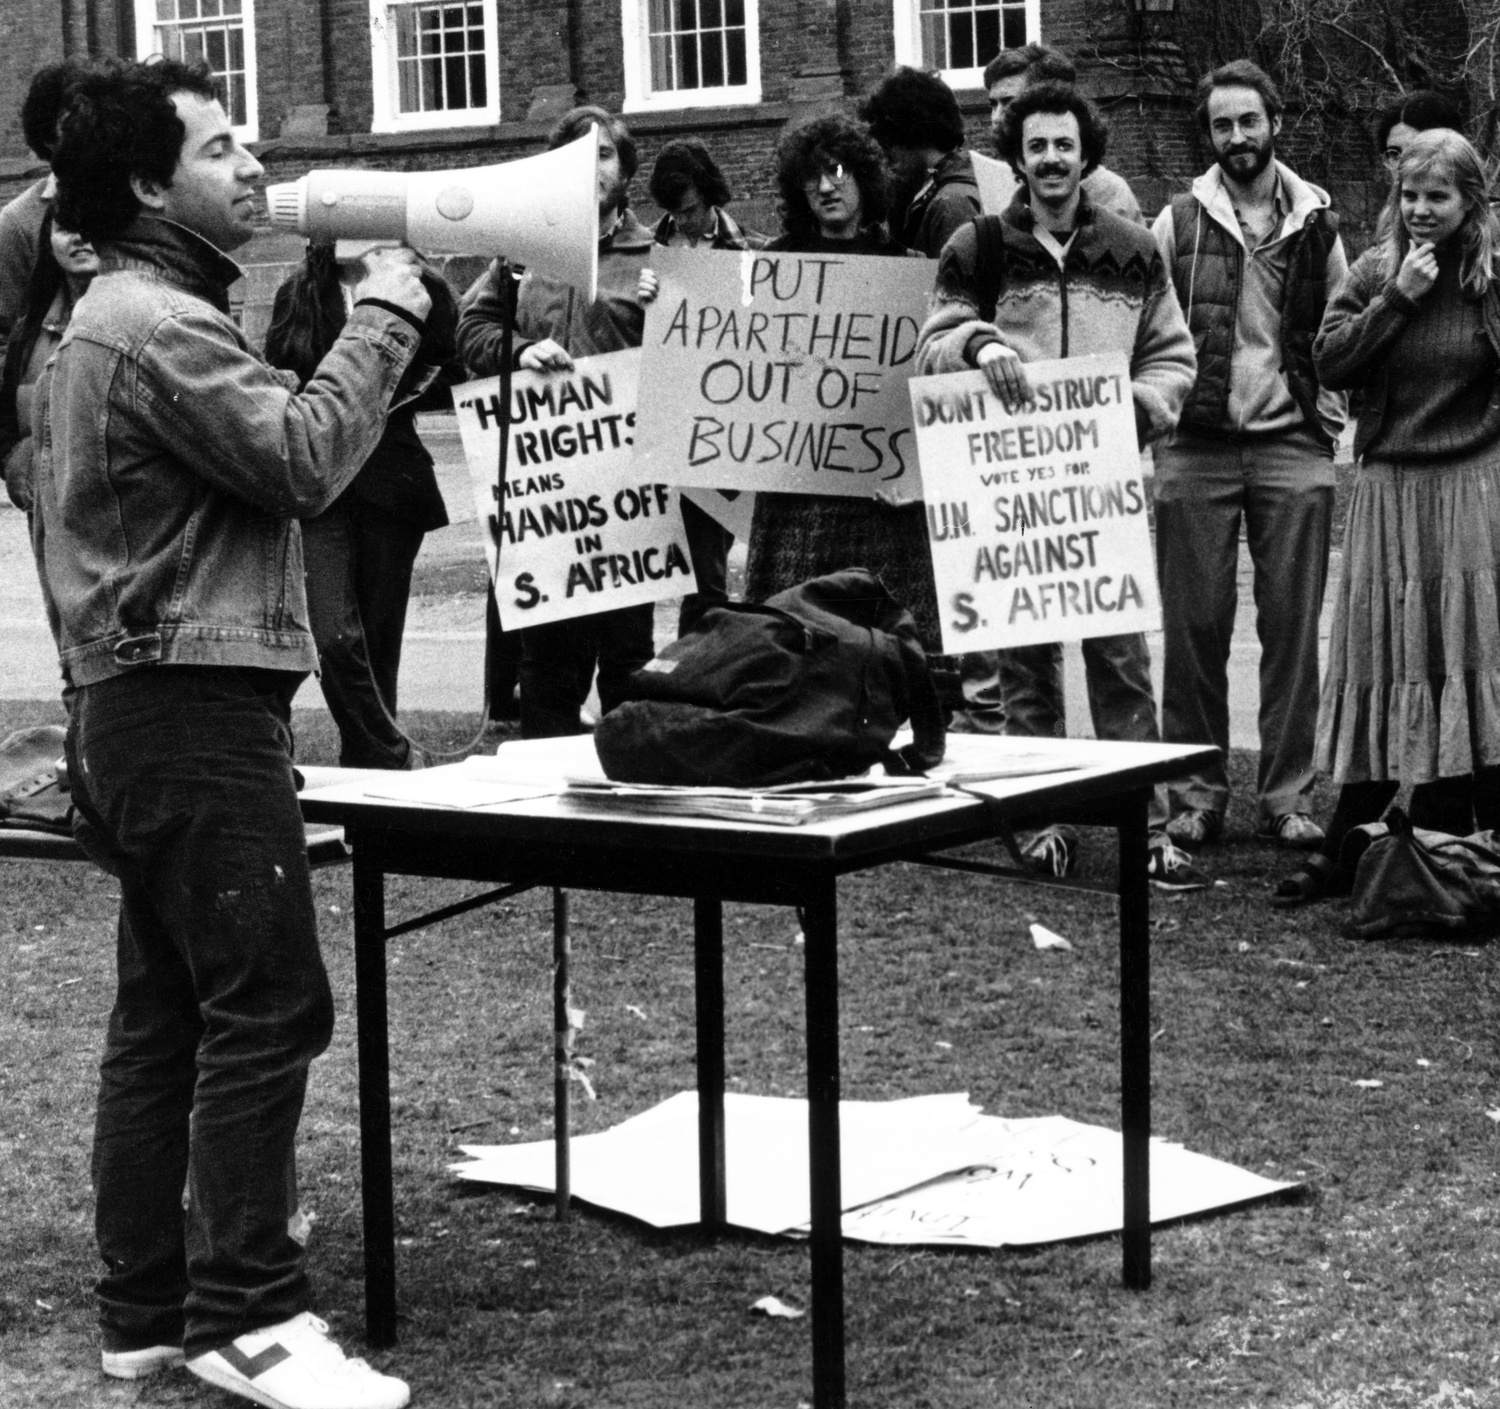 Divestment protestors in the 1980s.